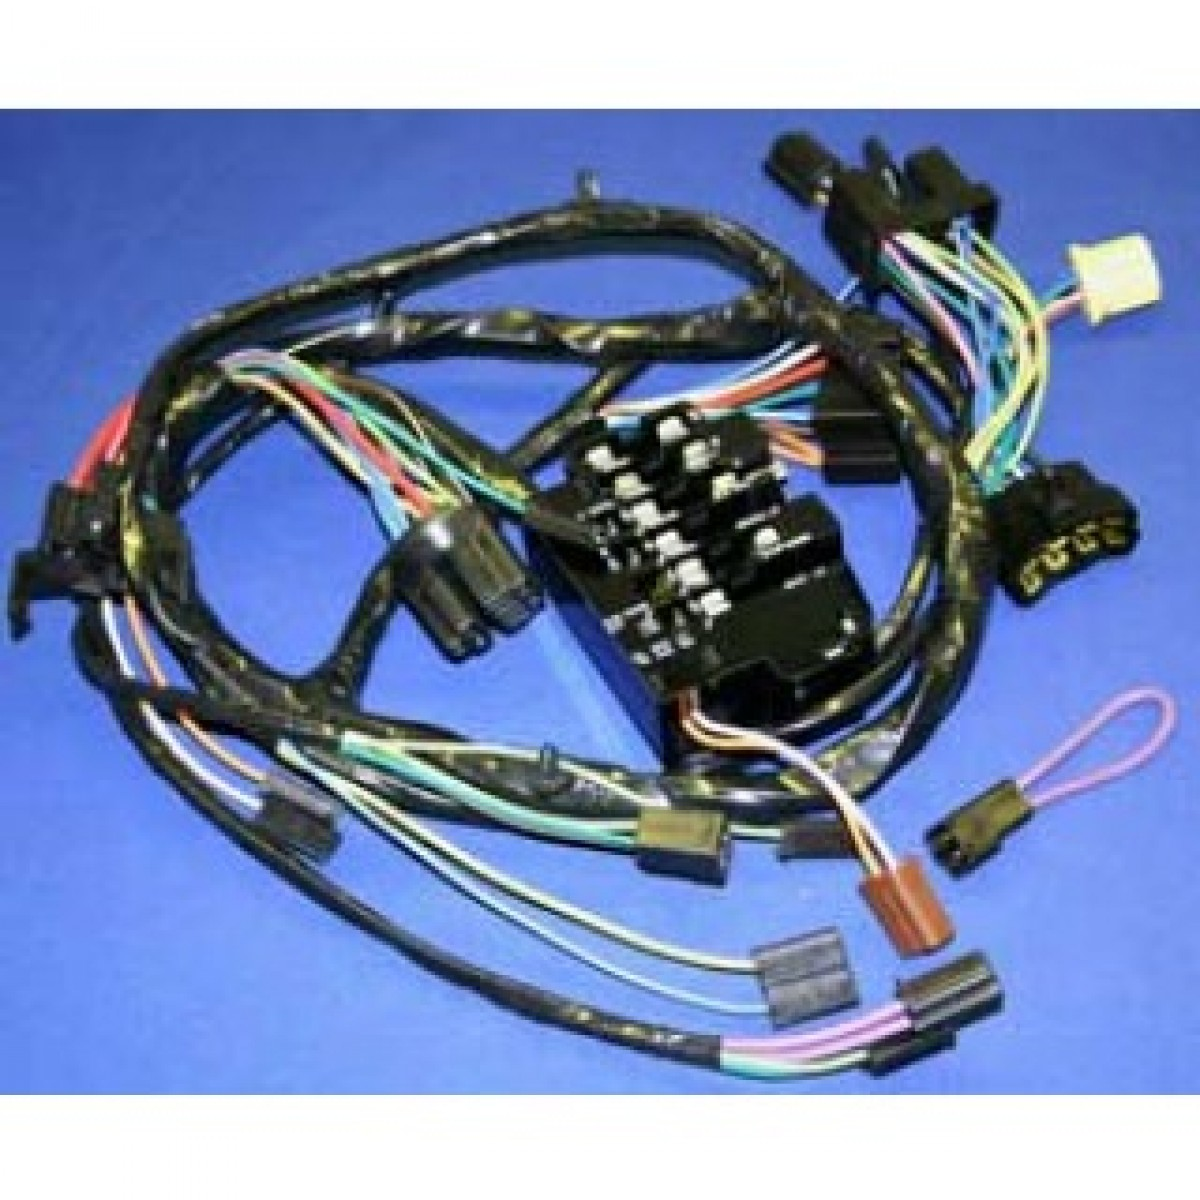 13326 Wiring Pigtail Under Dash Harness To Floor Courtesy Light Socket Used 1967 1969 Mercury Cougar 1967 1968 Ford Mustang besides S210121 as well Diagram view further Taking Short Trip Back 1970s further Showthread. on 1972 chevy c10 wiring diagram